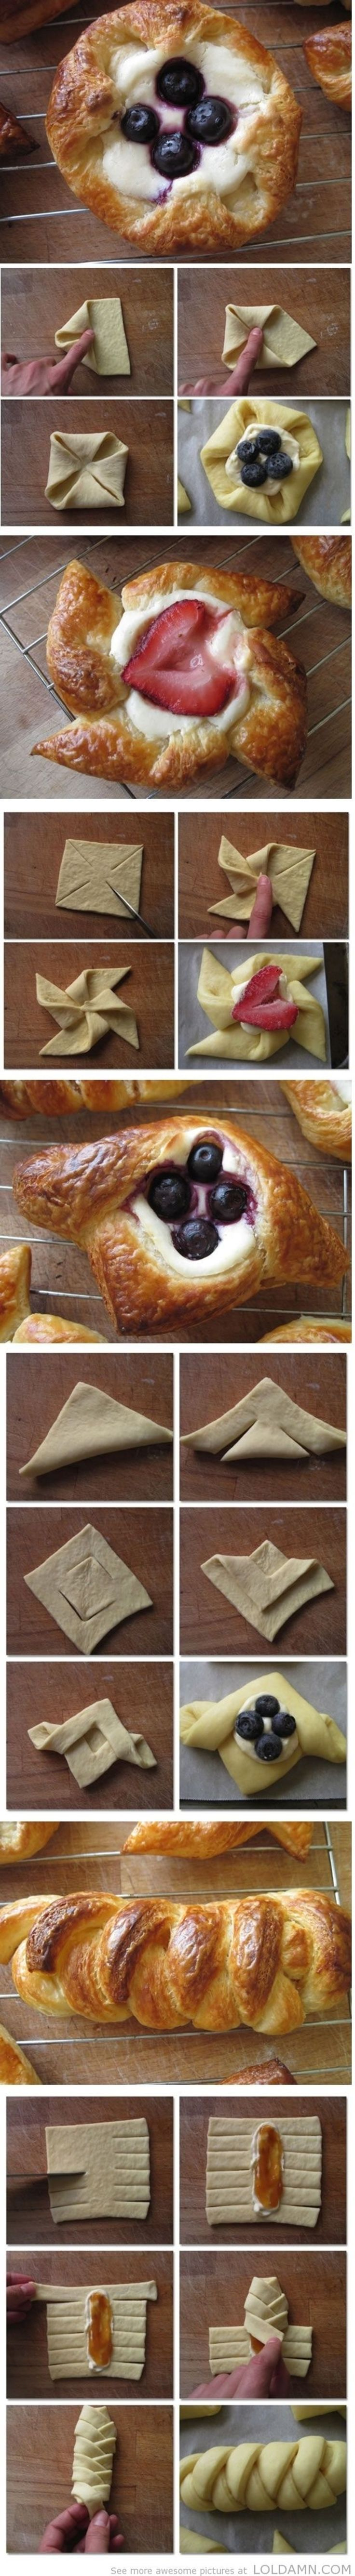 27 #Positively Pretty #Pastries to #Enjoy ...